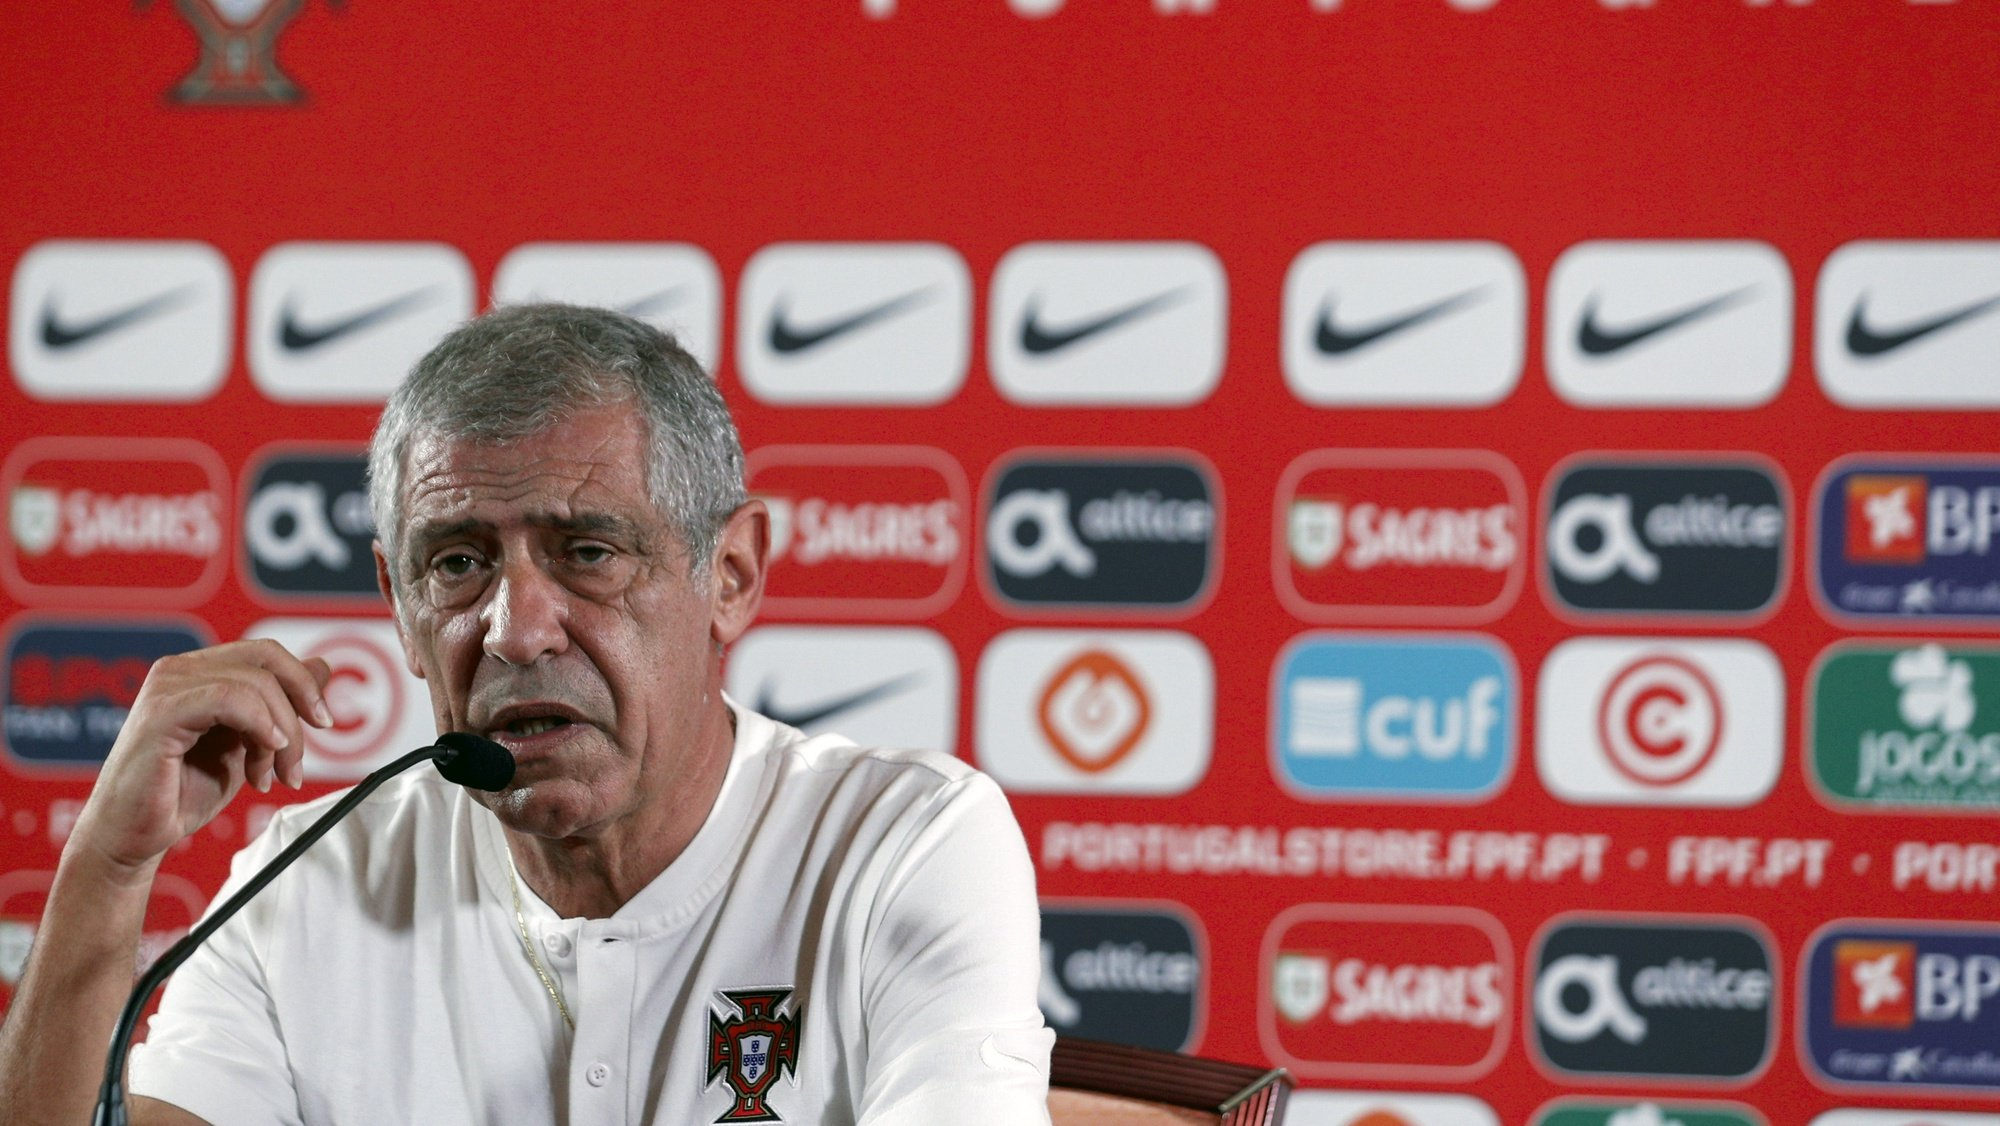 epa09518535 Portugal´s national soccer team head coach, Fernando Santos during a press conference at Garrao Village, Loule, Faro, South of Portugal, 11 October 2021. Portugal will face Luxembourg in their FIFA World Cup Qatar 2022 qualifying group A soccer match on 12 October 2021 in Faro.  EPA/ANTONIO COTRIM